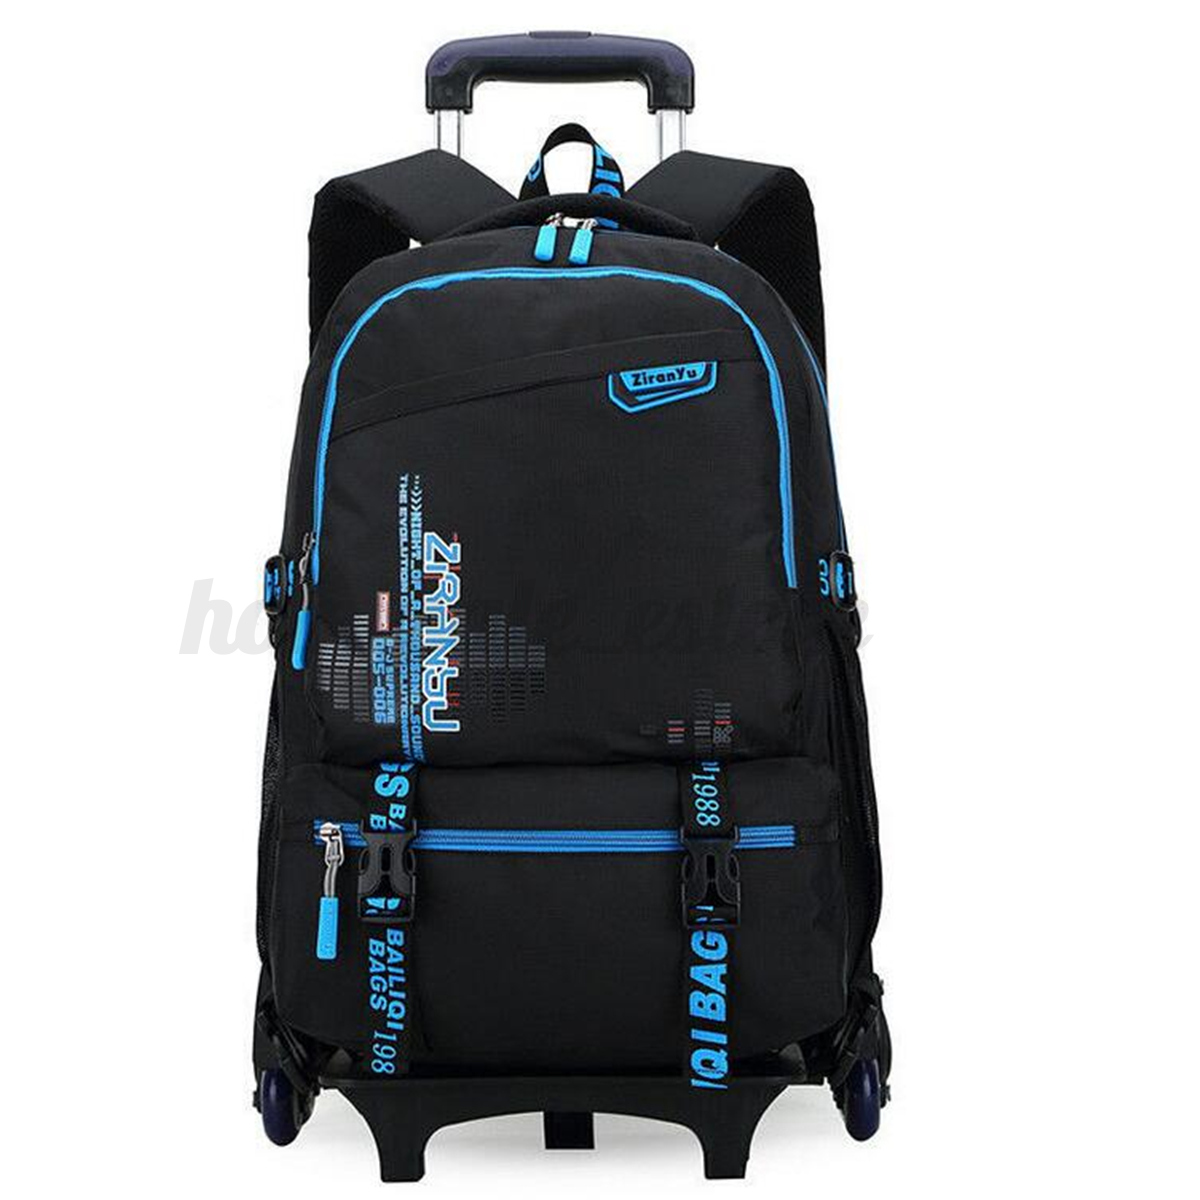 Ybriefbag Unisex Trolley Laptop Travel Bag Boarding Luggage Bag Business Student Admission Package Vacation Color : Blue, Size : L